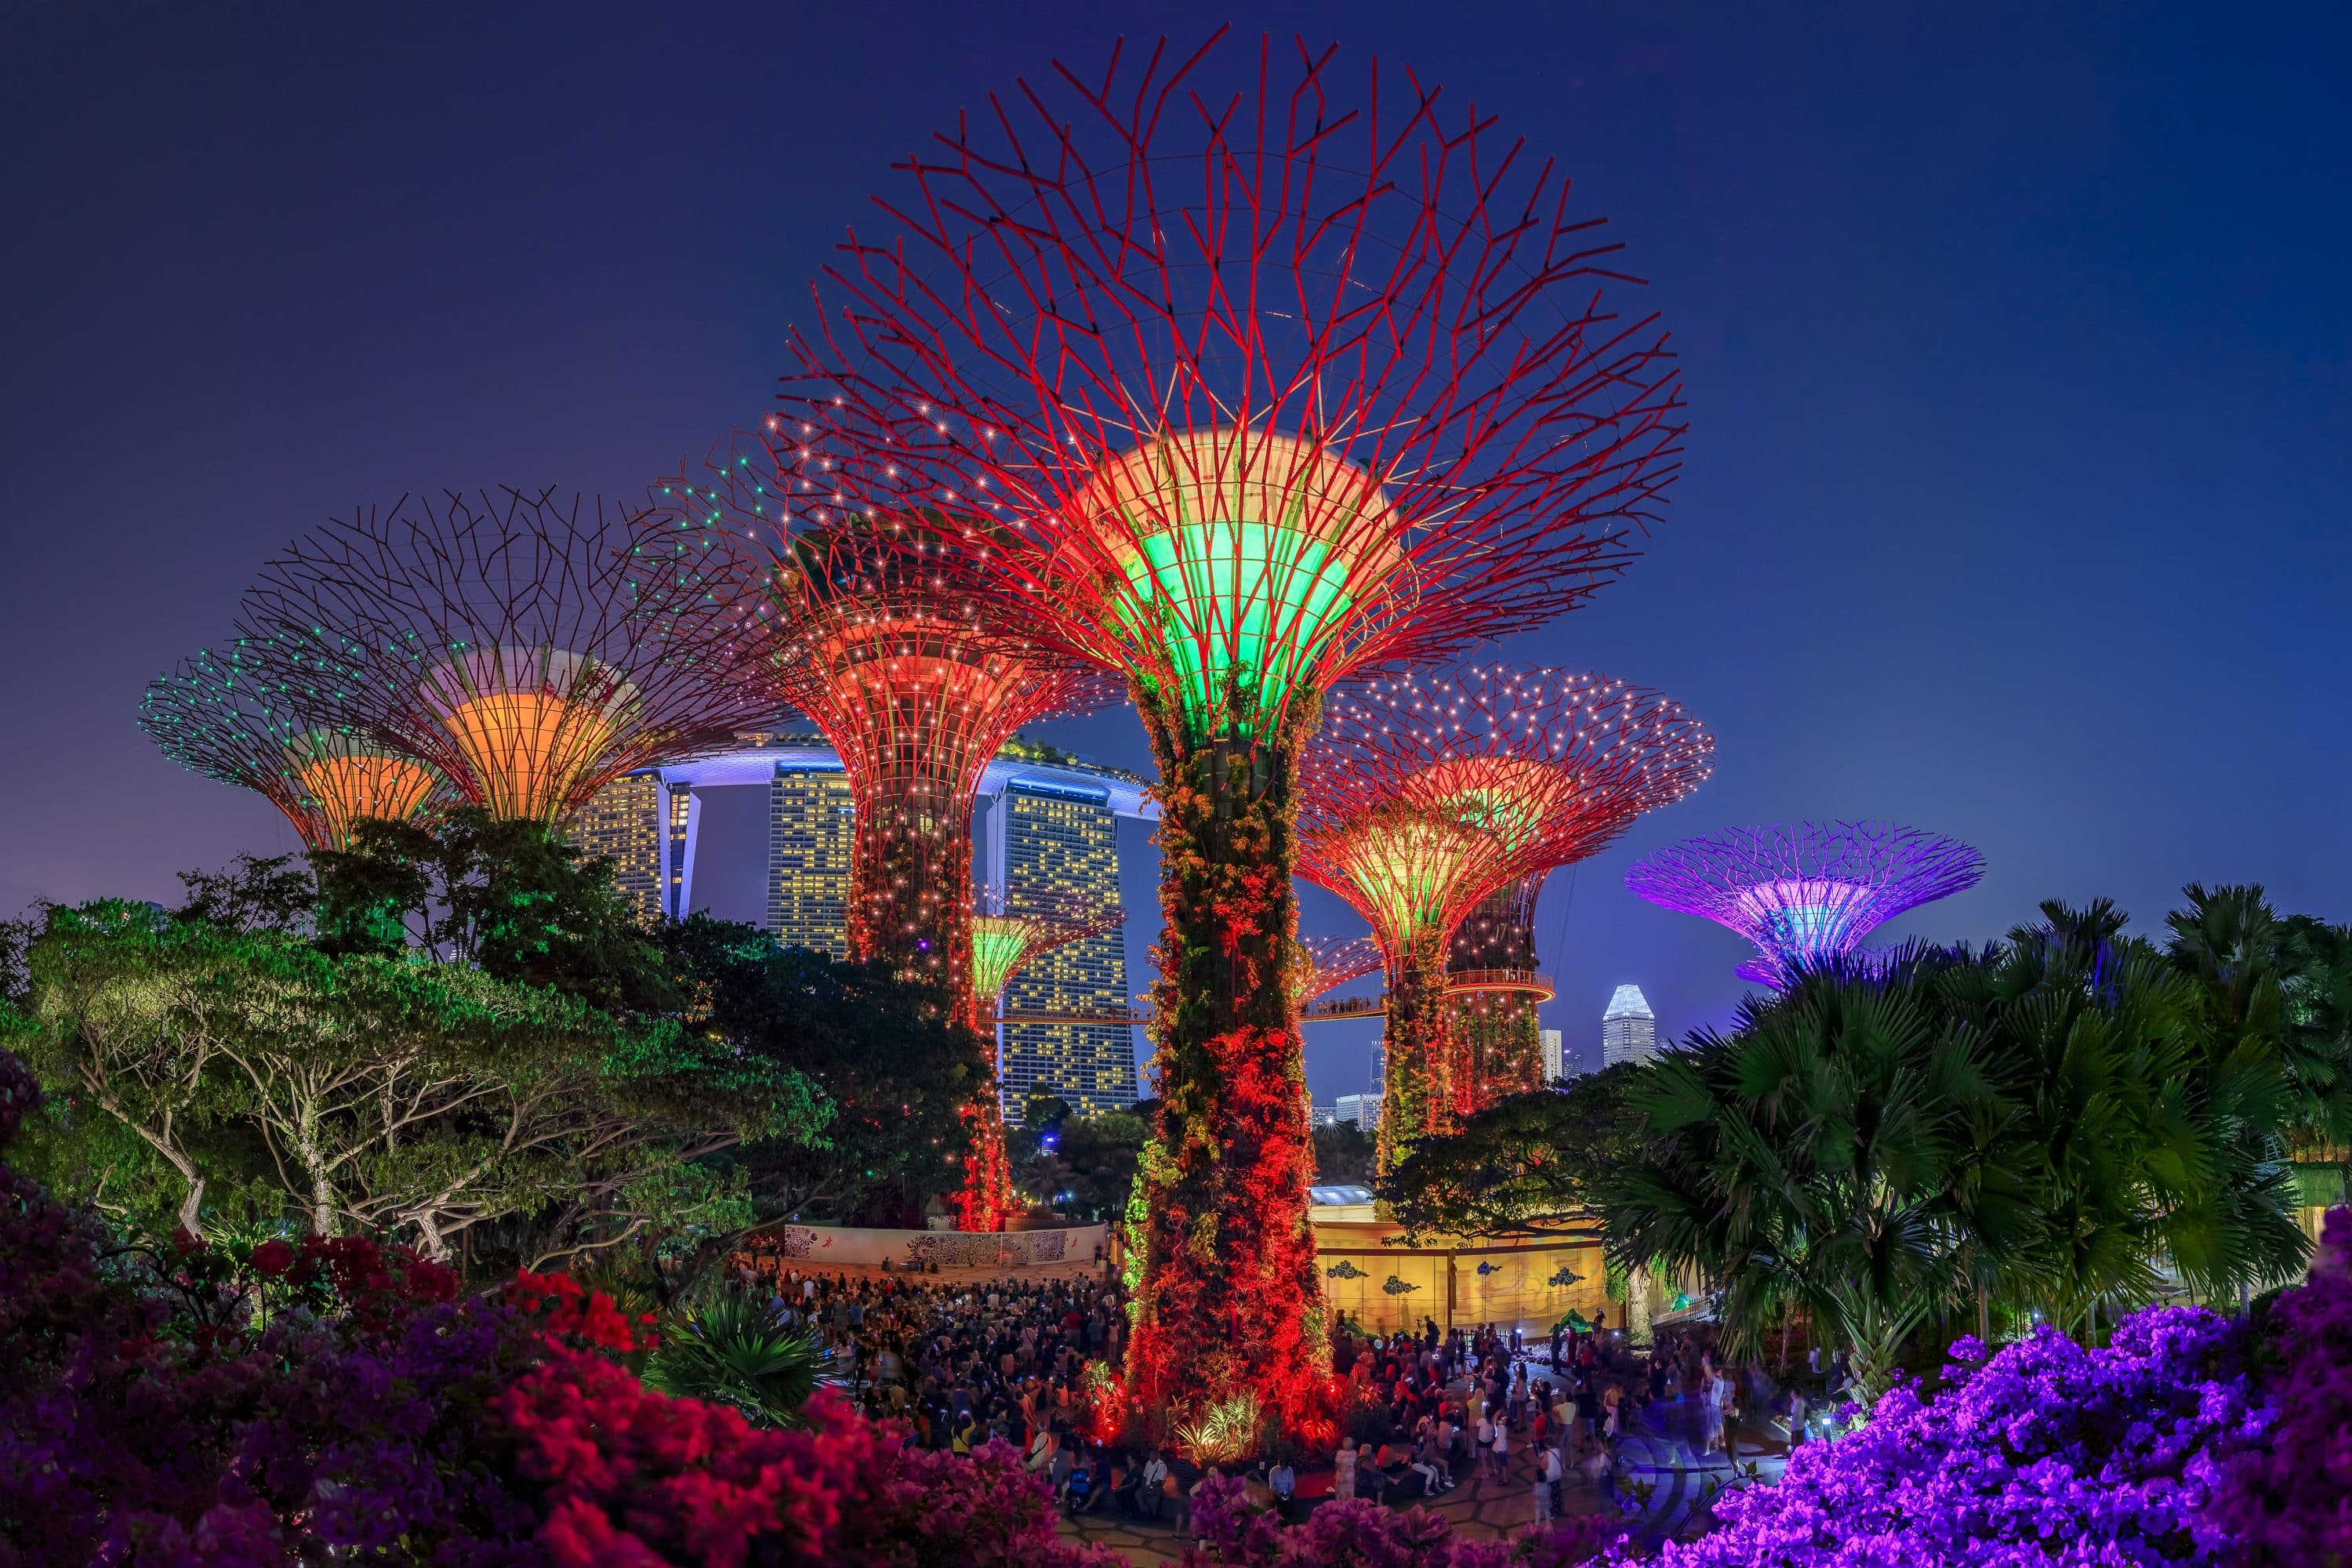 Illuminated 'supertrees' by night at Gardens by the Bay, Singapore